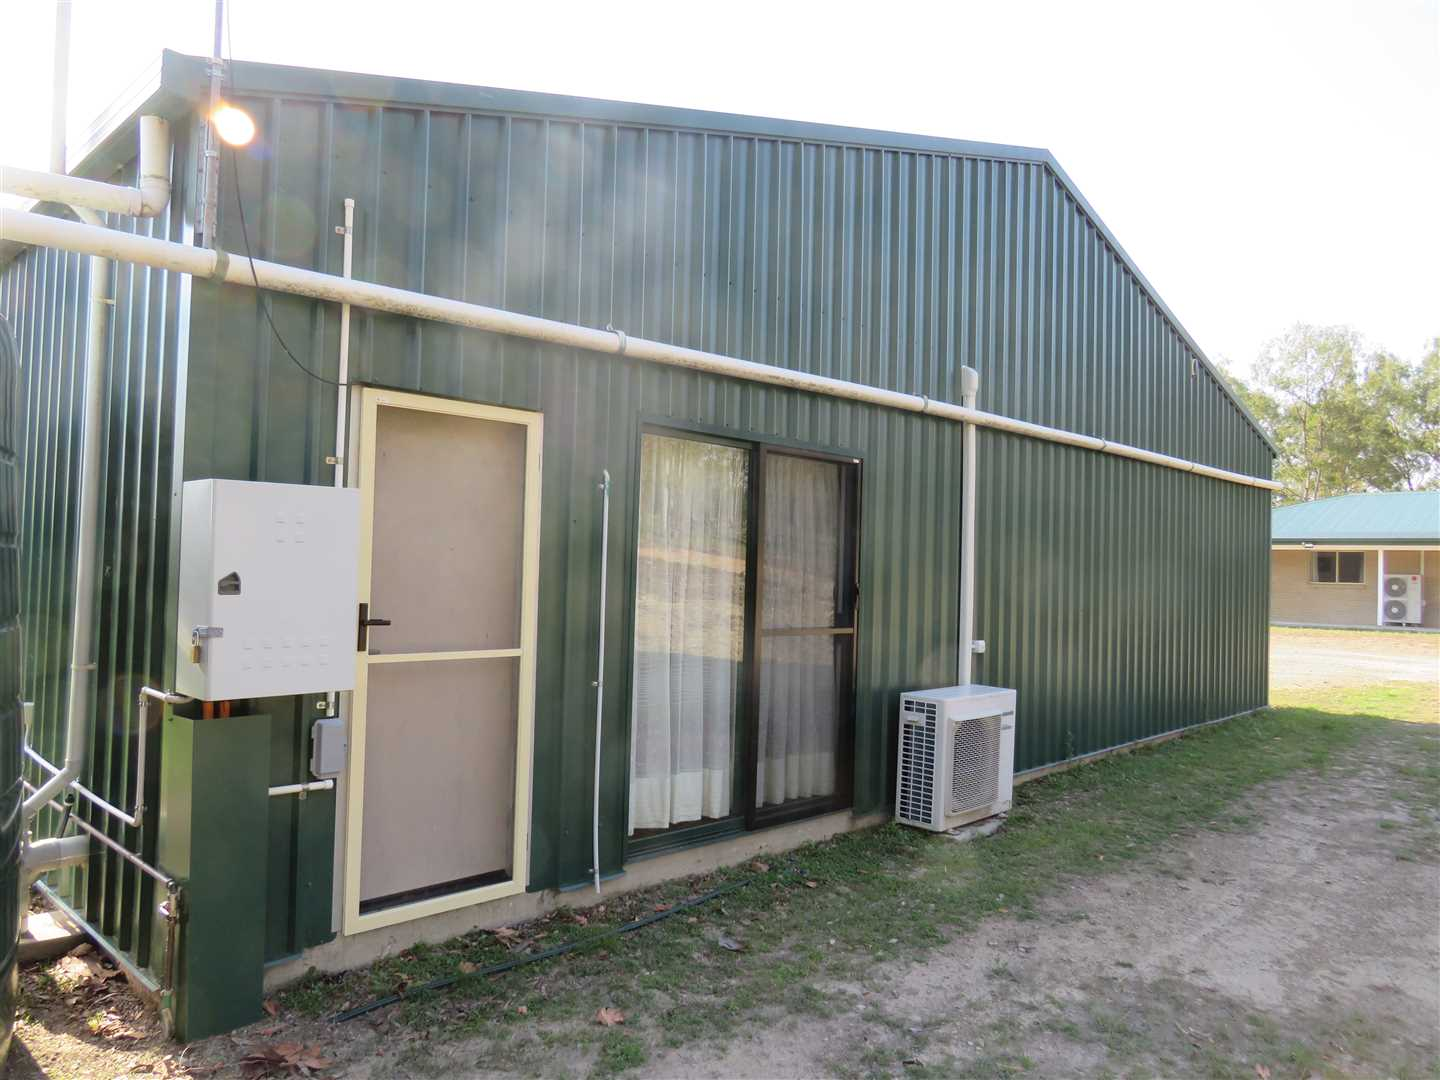 2 nd entrance to shed unit